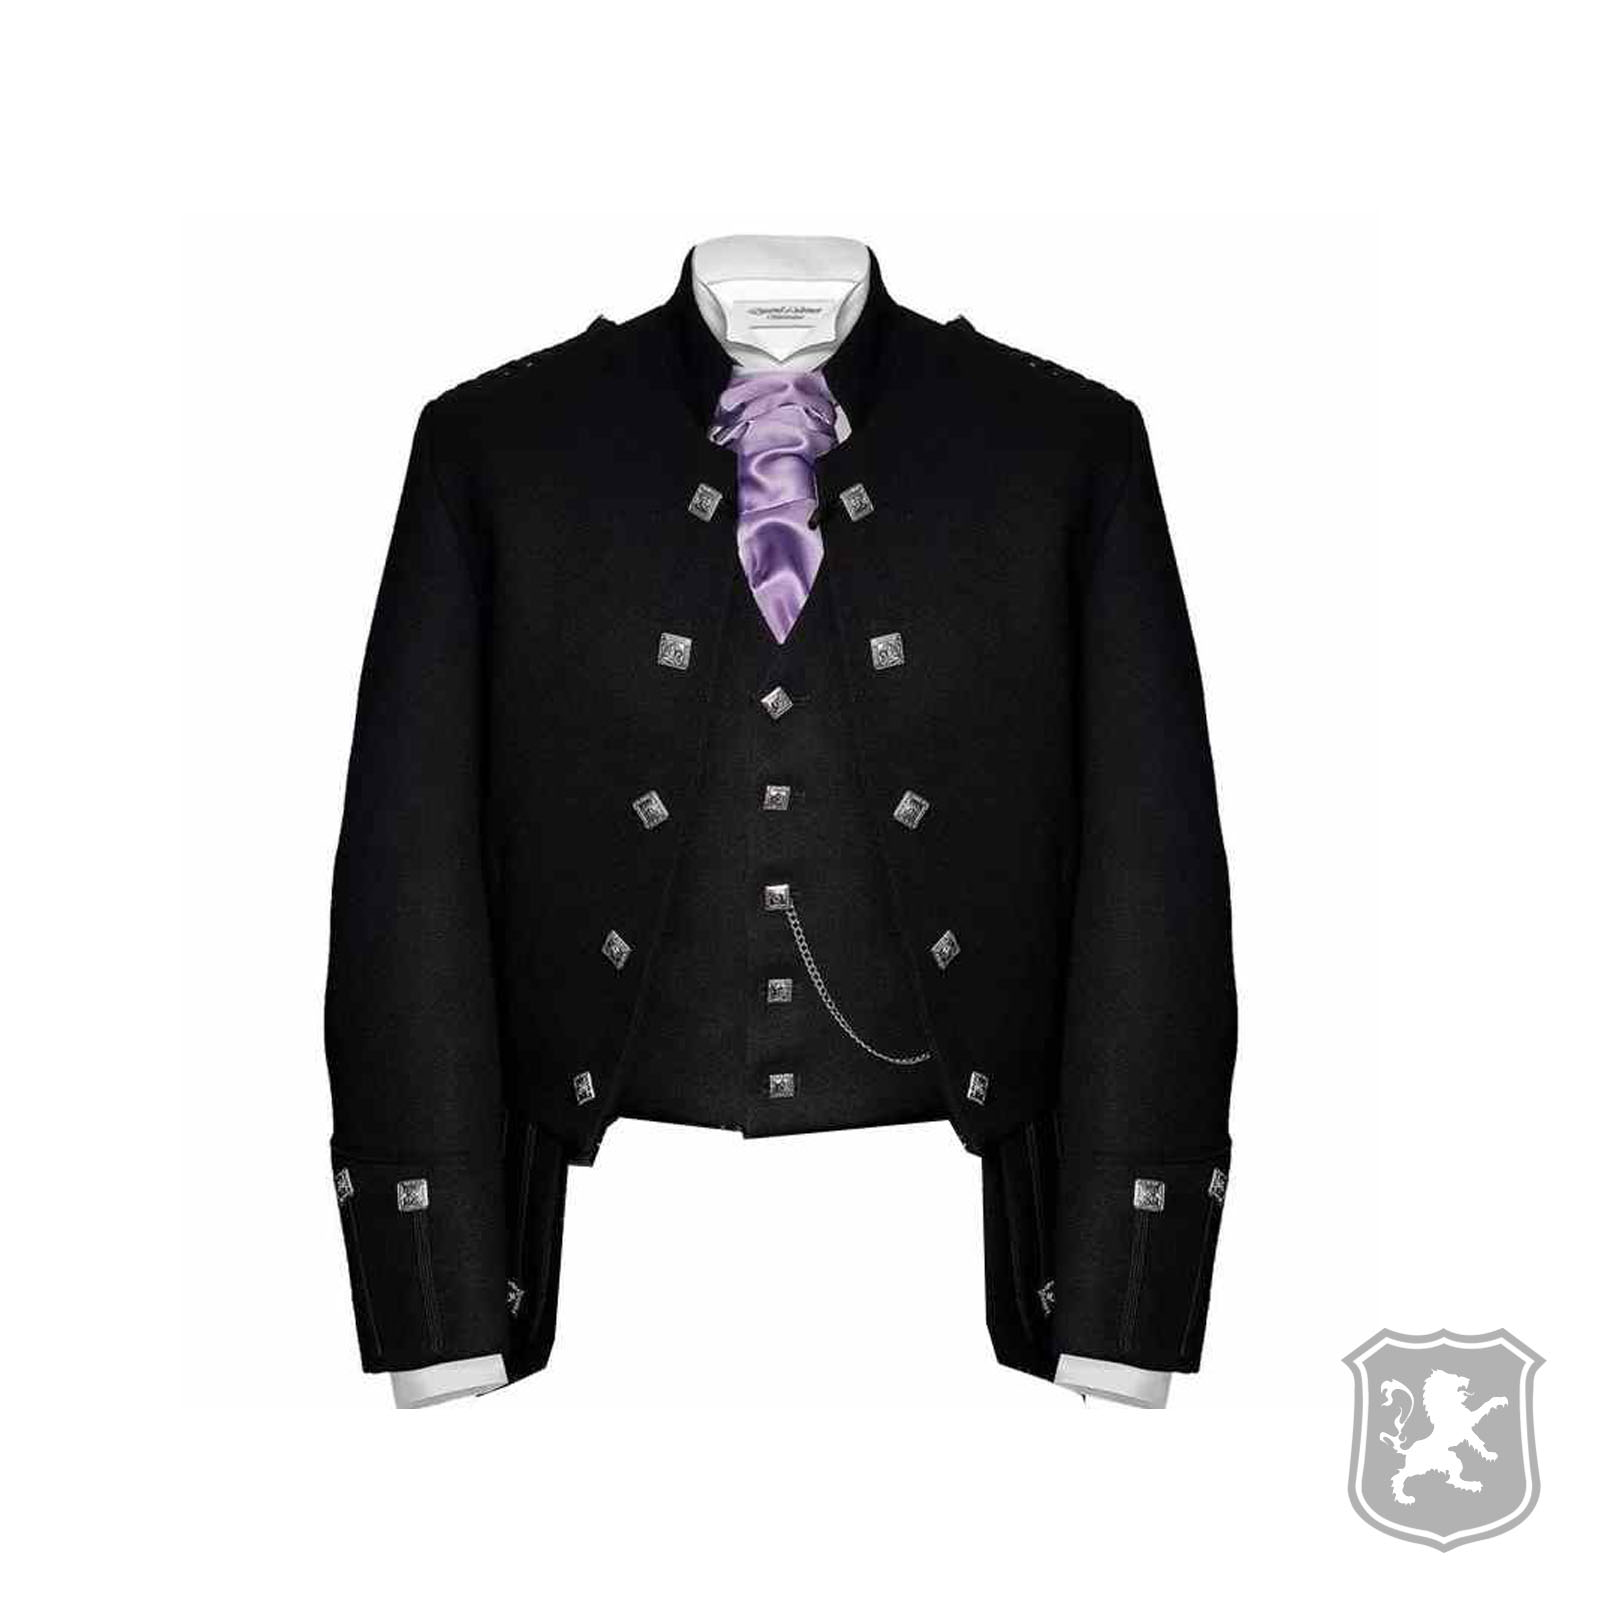 c9636e48403 Black Sheriffmuir Jacket With 5 Buttons Vest